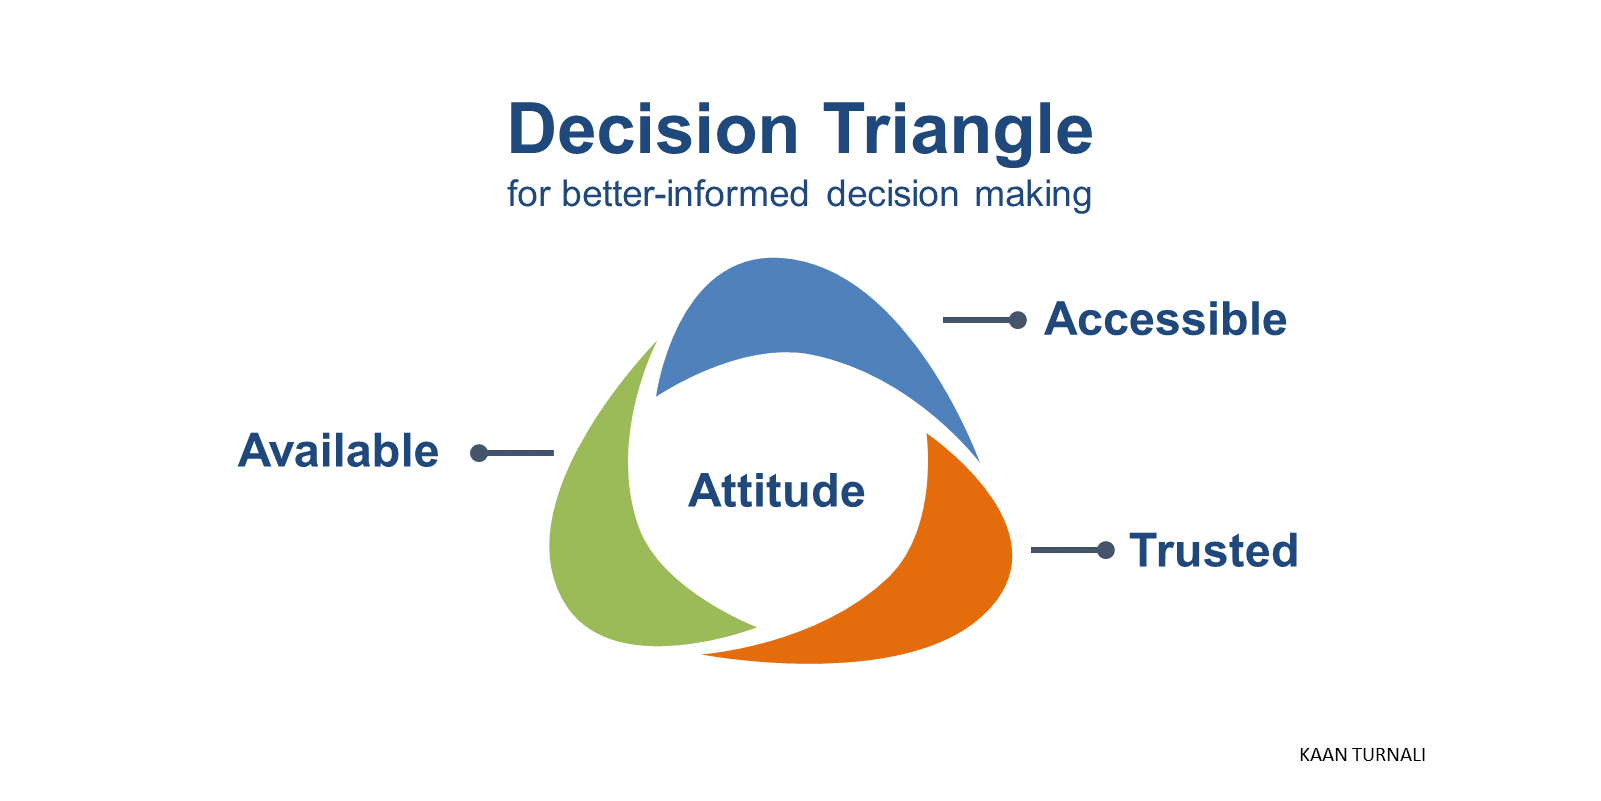 Decision Triangle for better-informed decision making. Source: Kaan Turnali